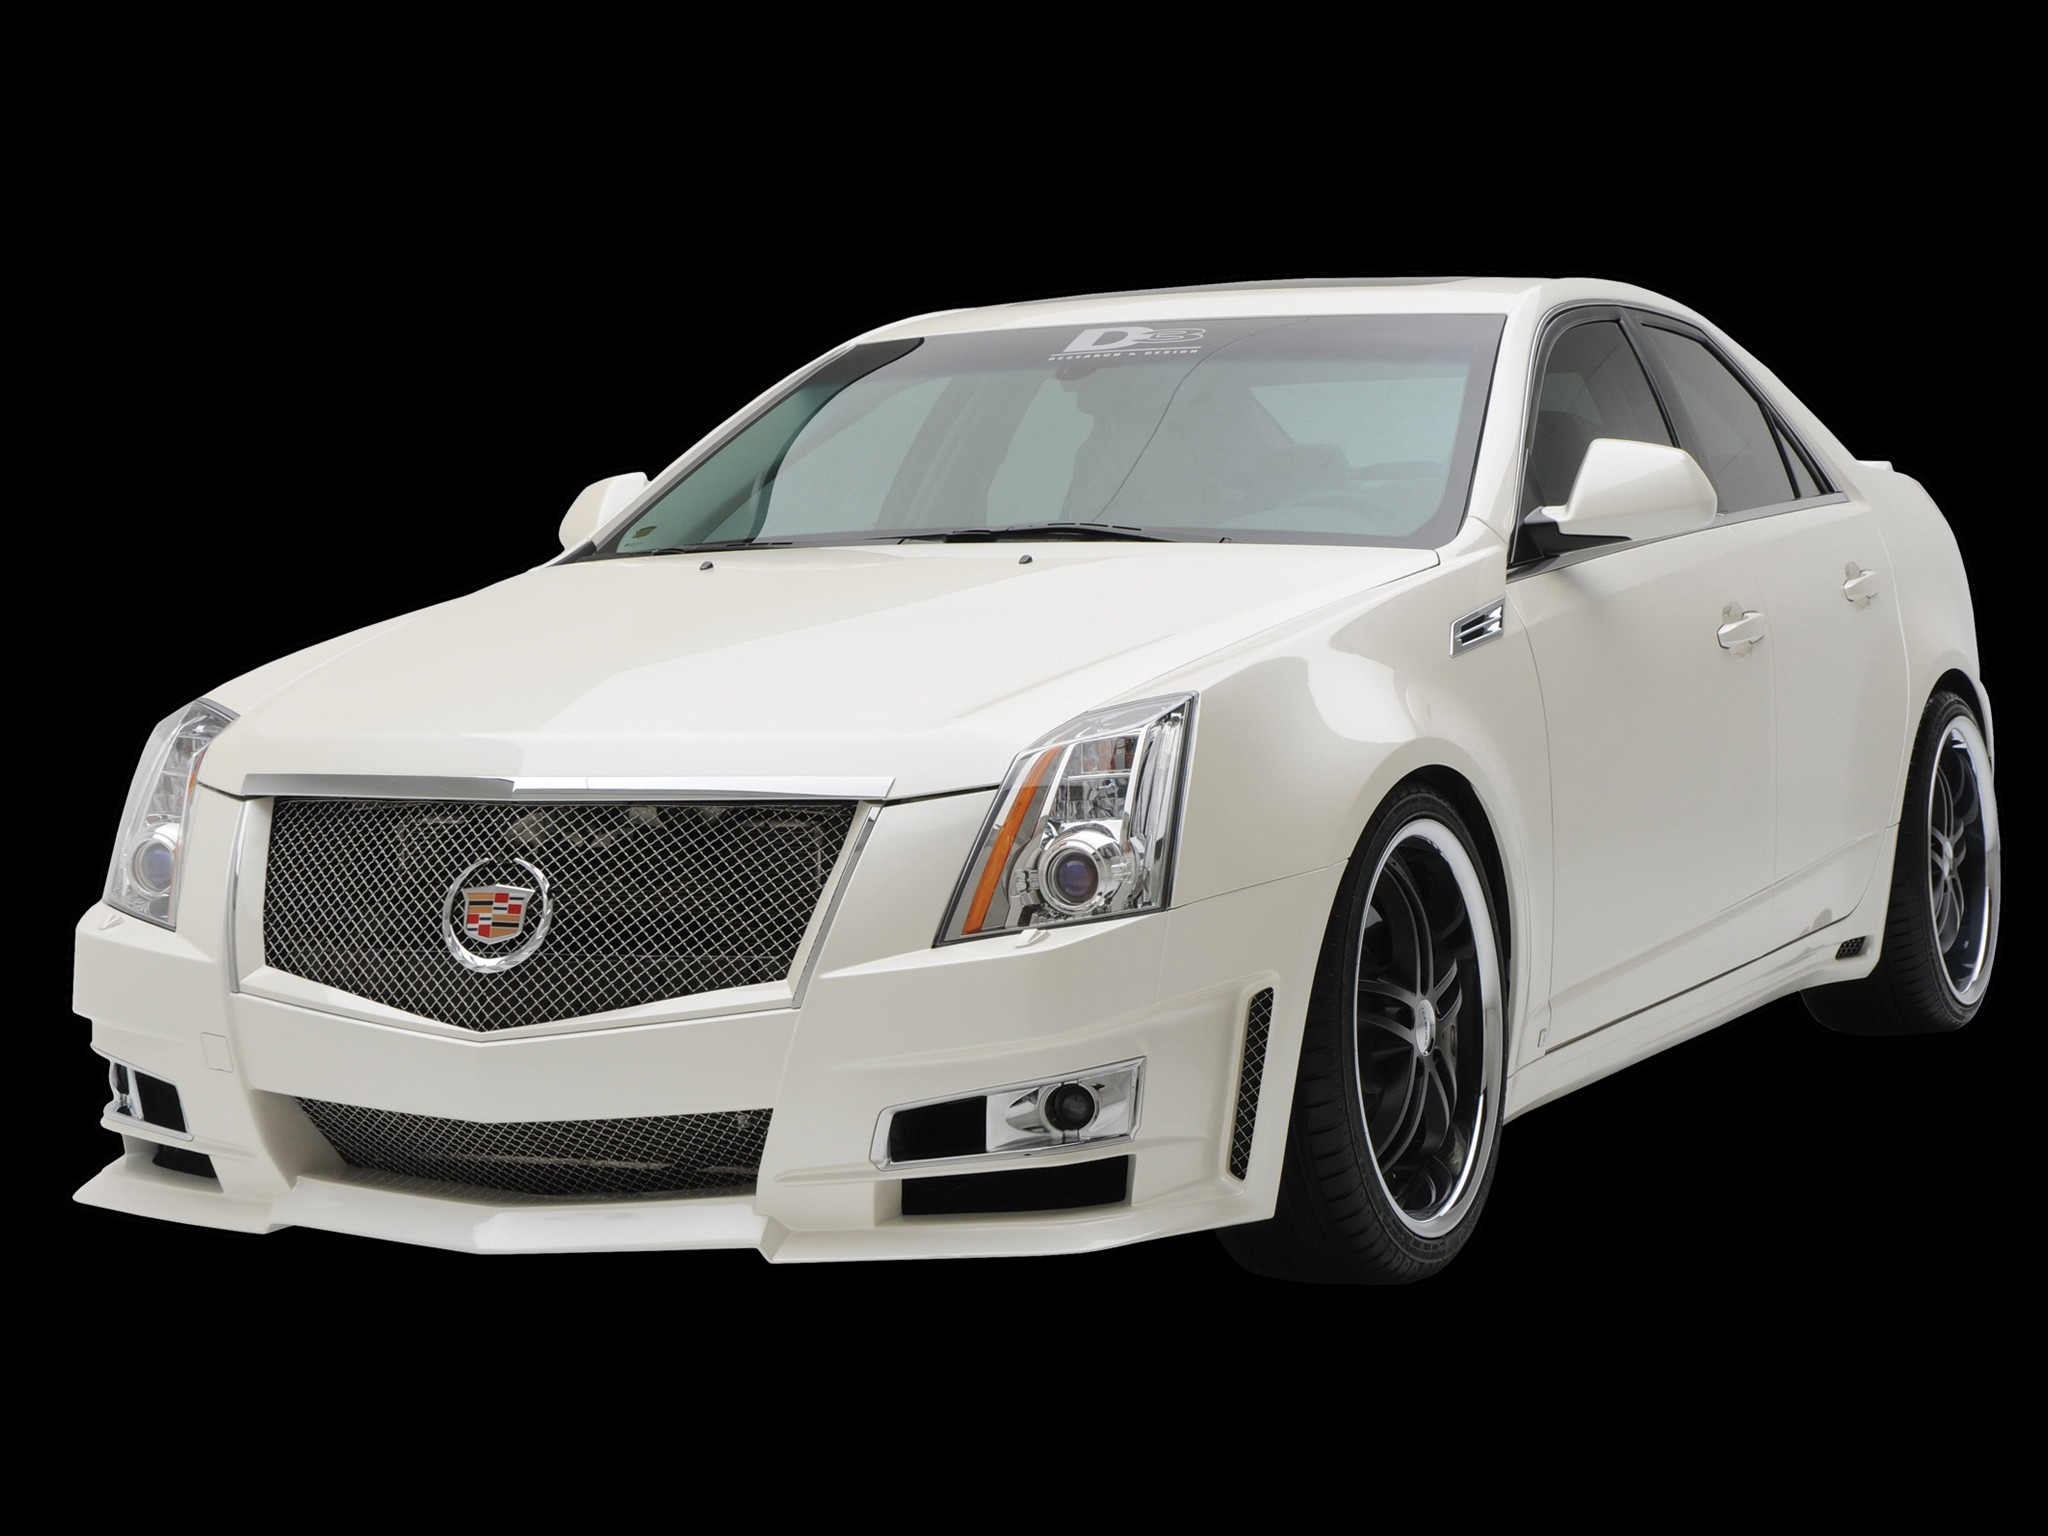 Cadillac Cts Coupe 2017 >> CADILLAC CTS Coupe - 2011, 2012, 2013, 2014, 2015, 2016 ...